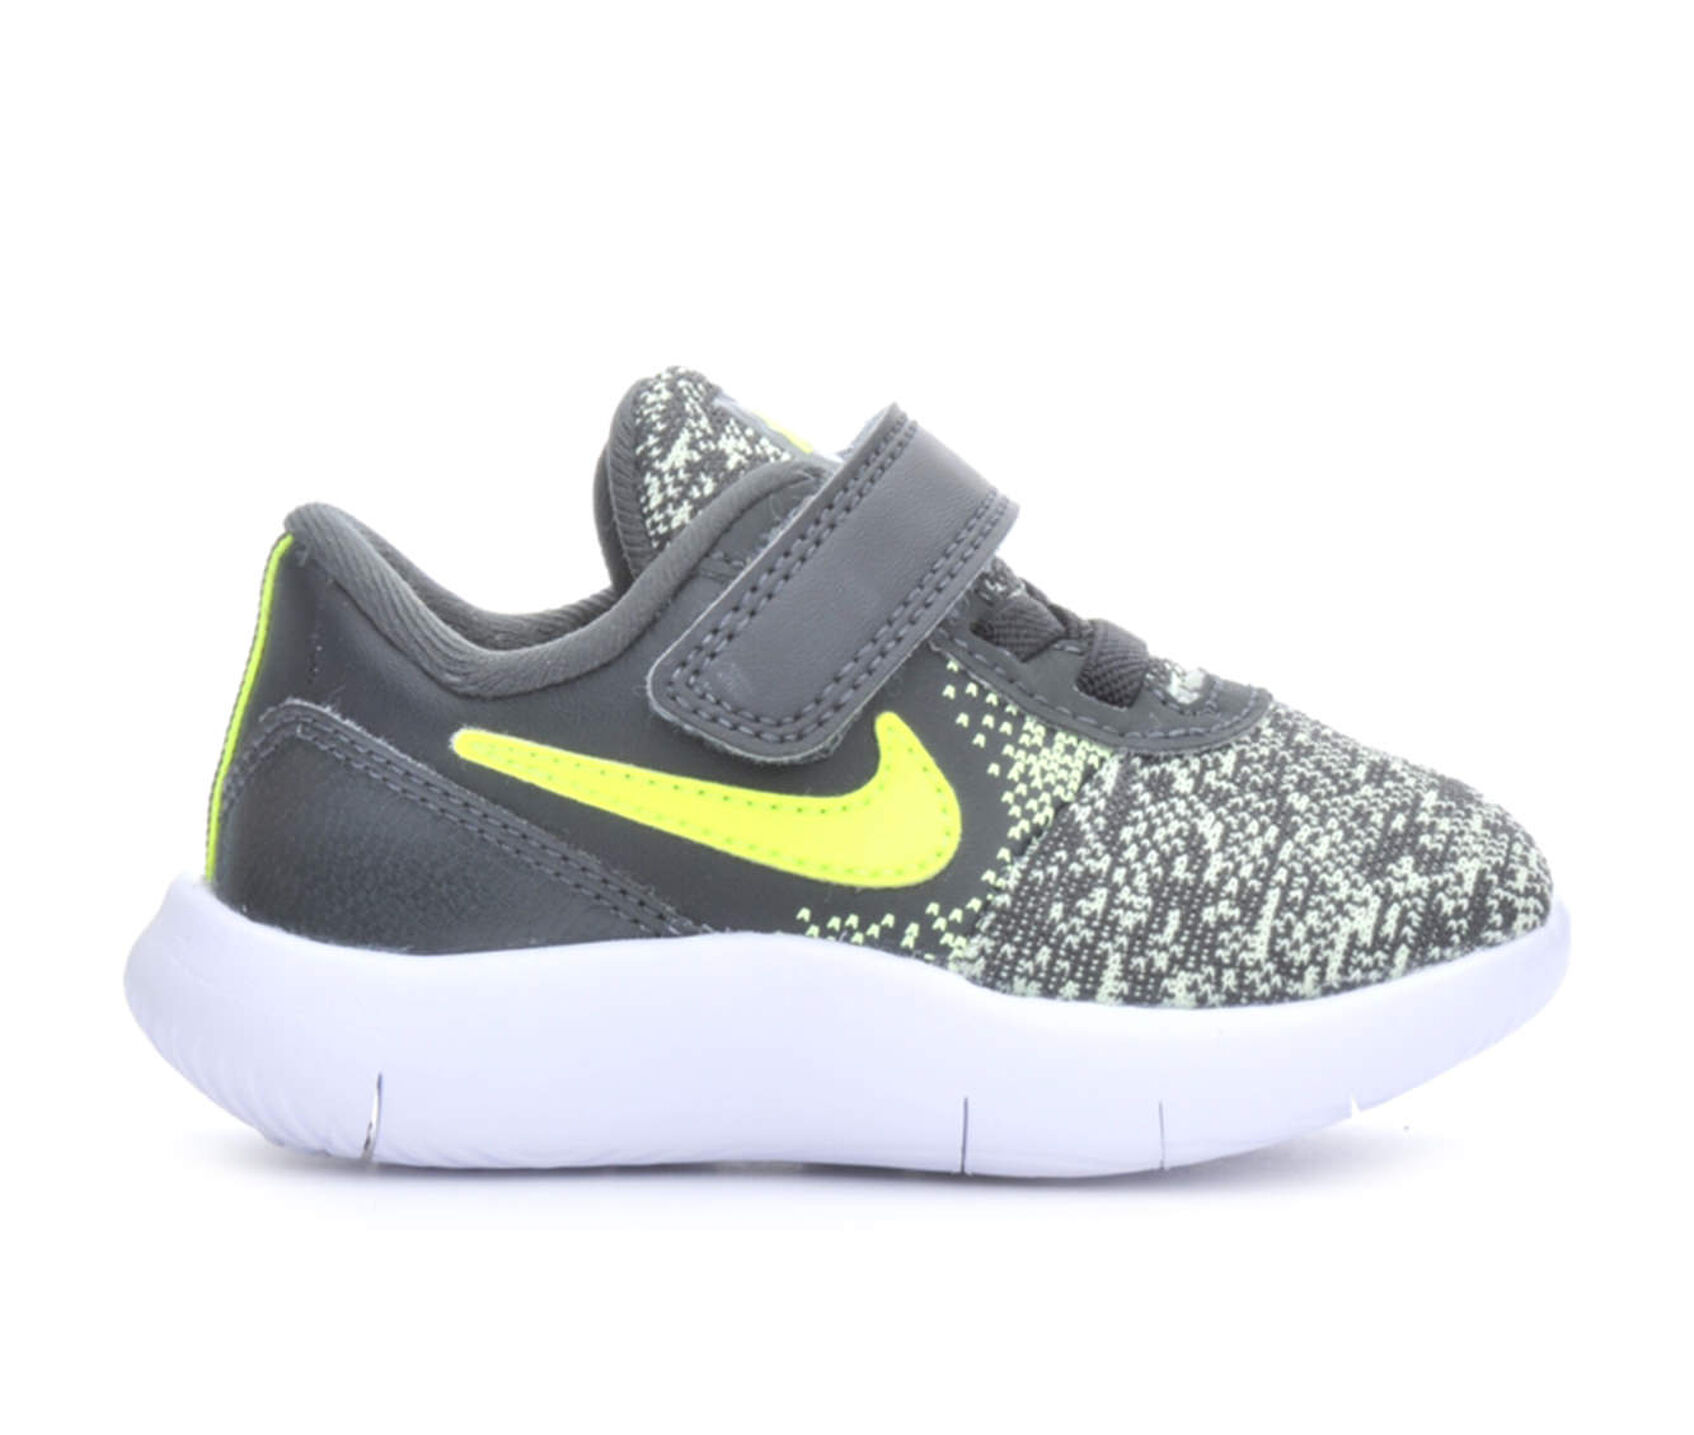 Boys Nike Infant Flex Contact Velcro Running Shoes